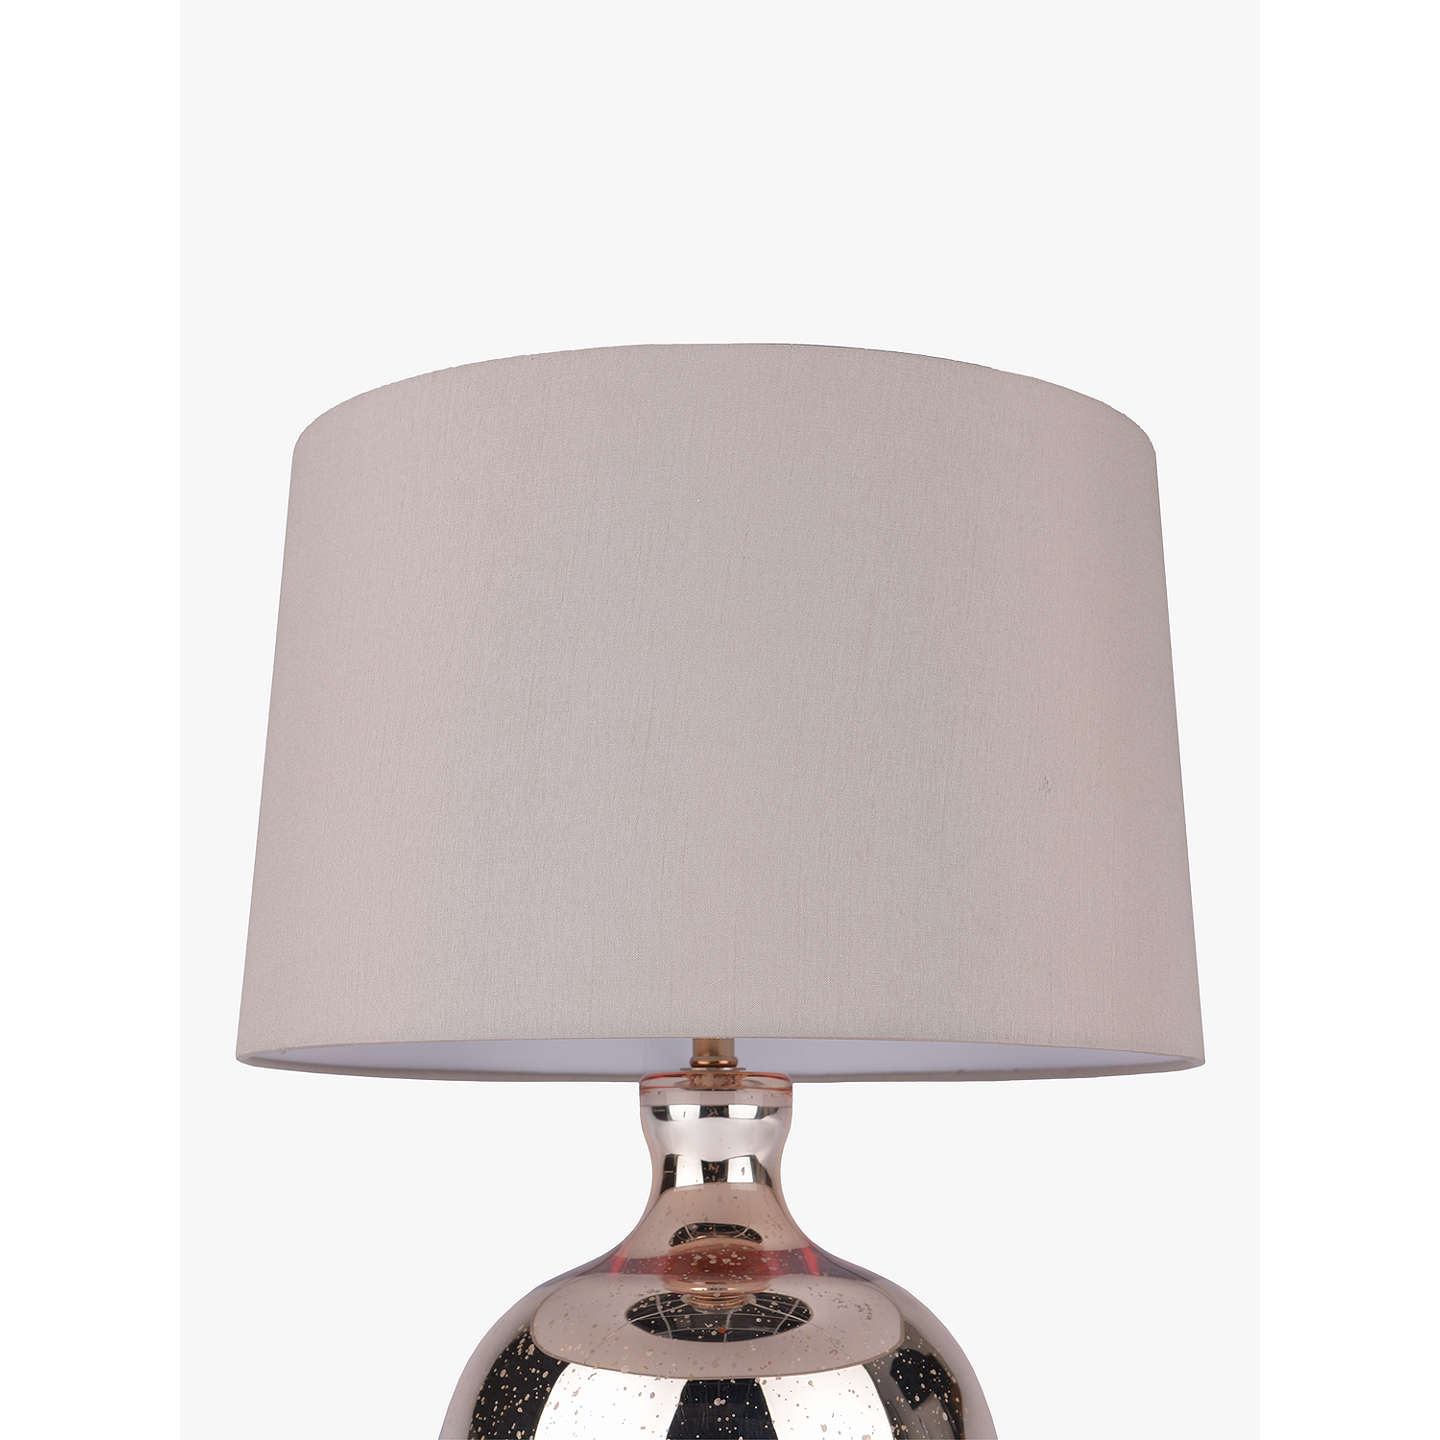 BuyJohn Lewis Tabitha Copper Table Lamp Online at johnlewis.com